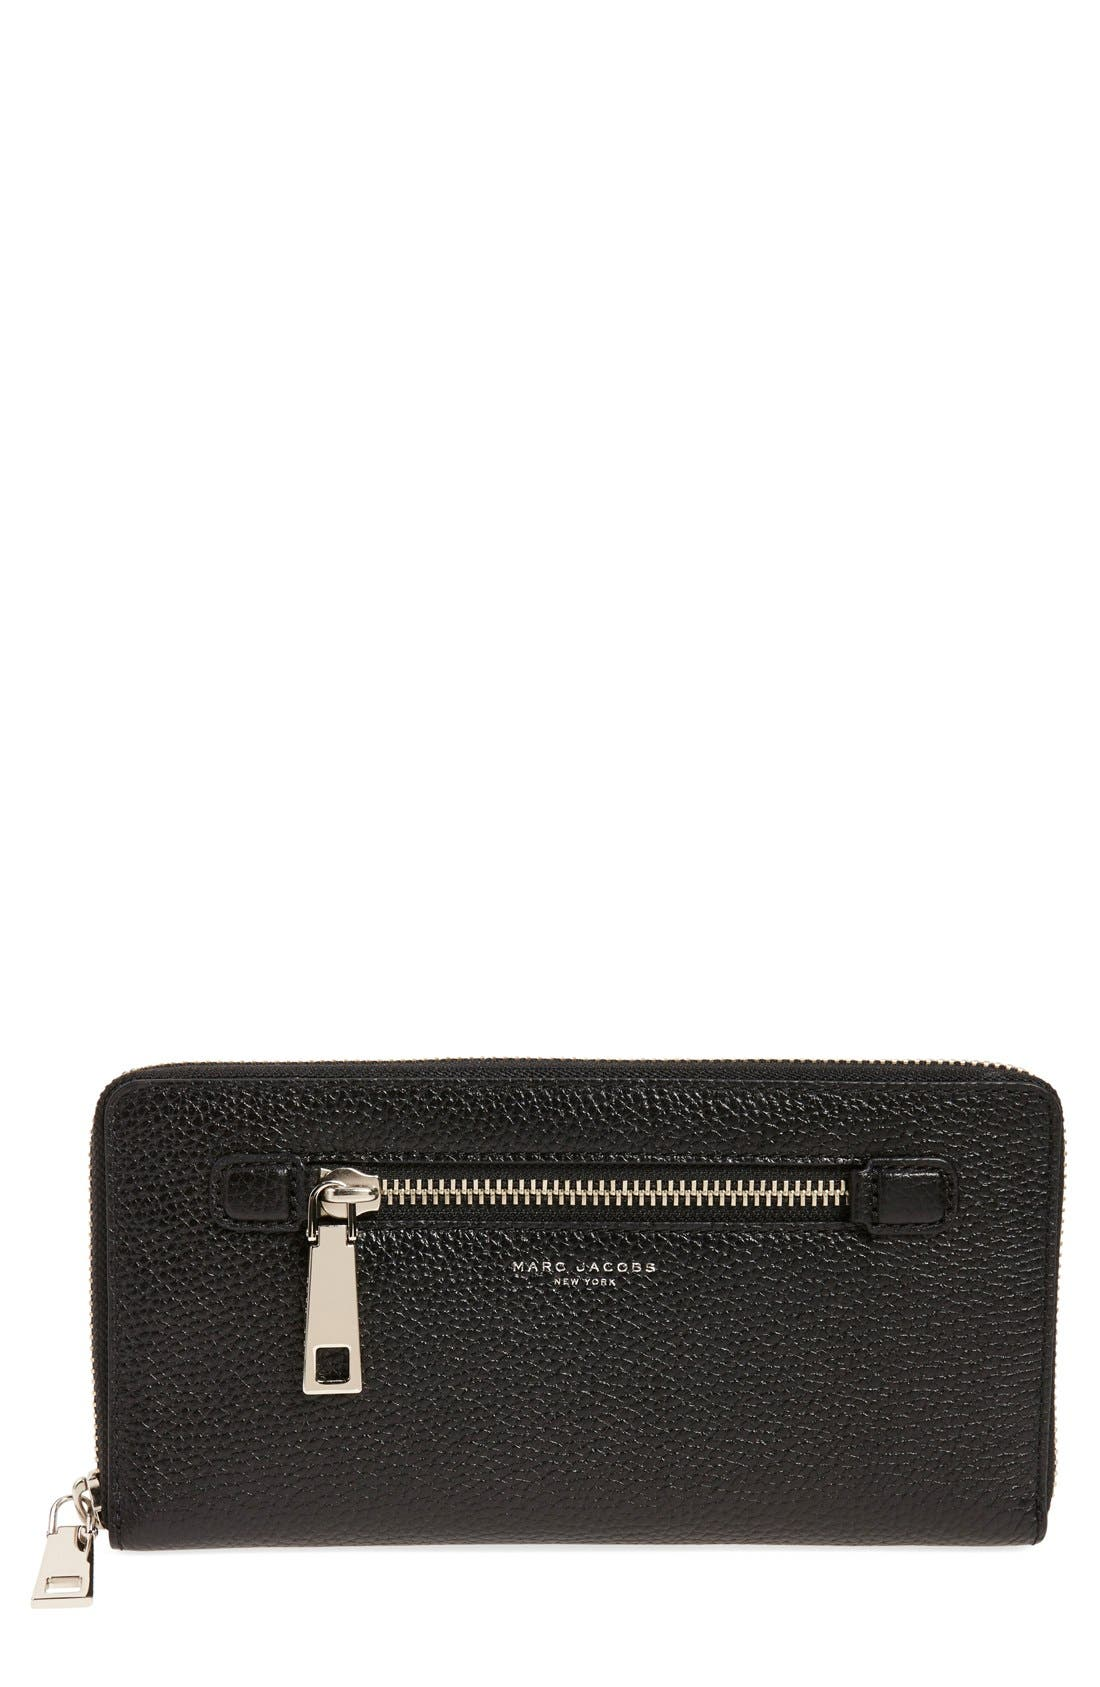 MARC JACOBS 'Gotham' Leather Travel Wallet